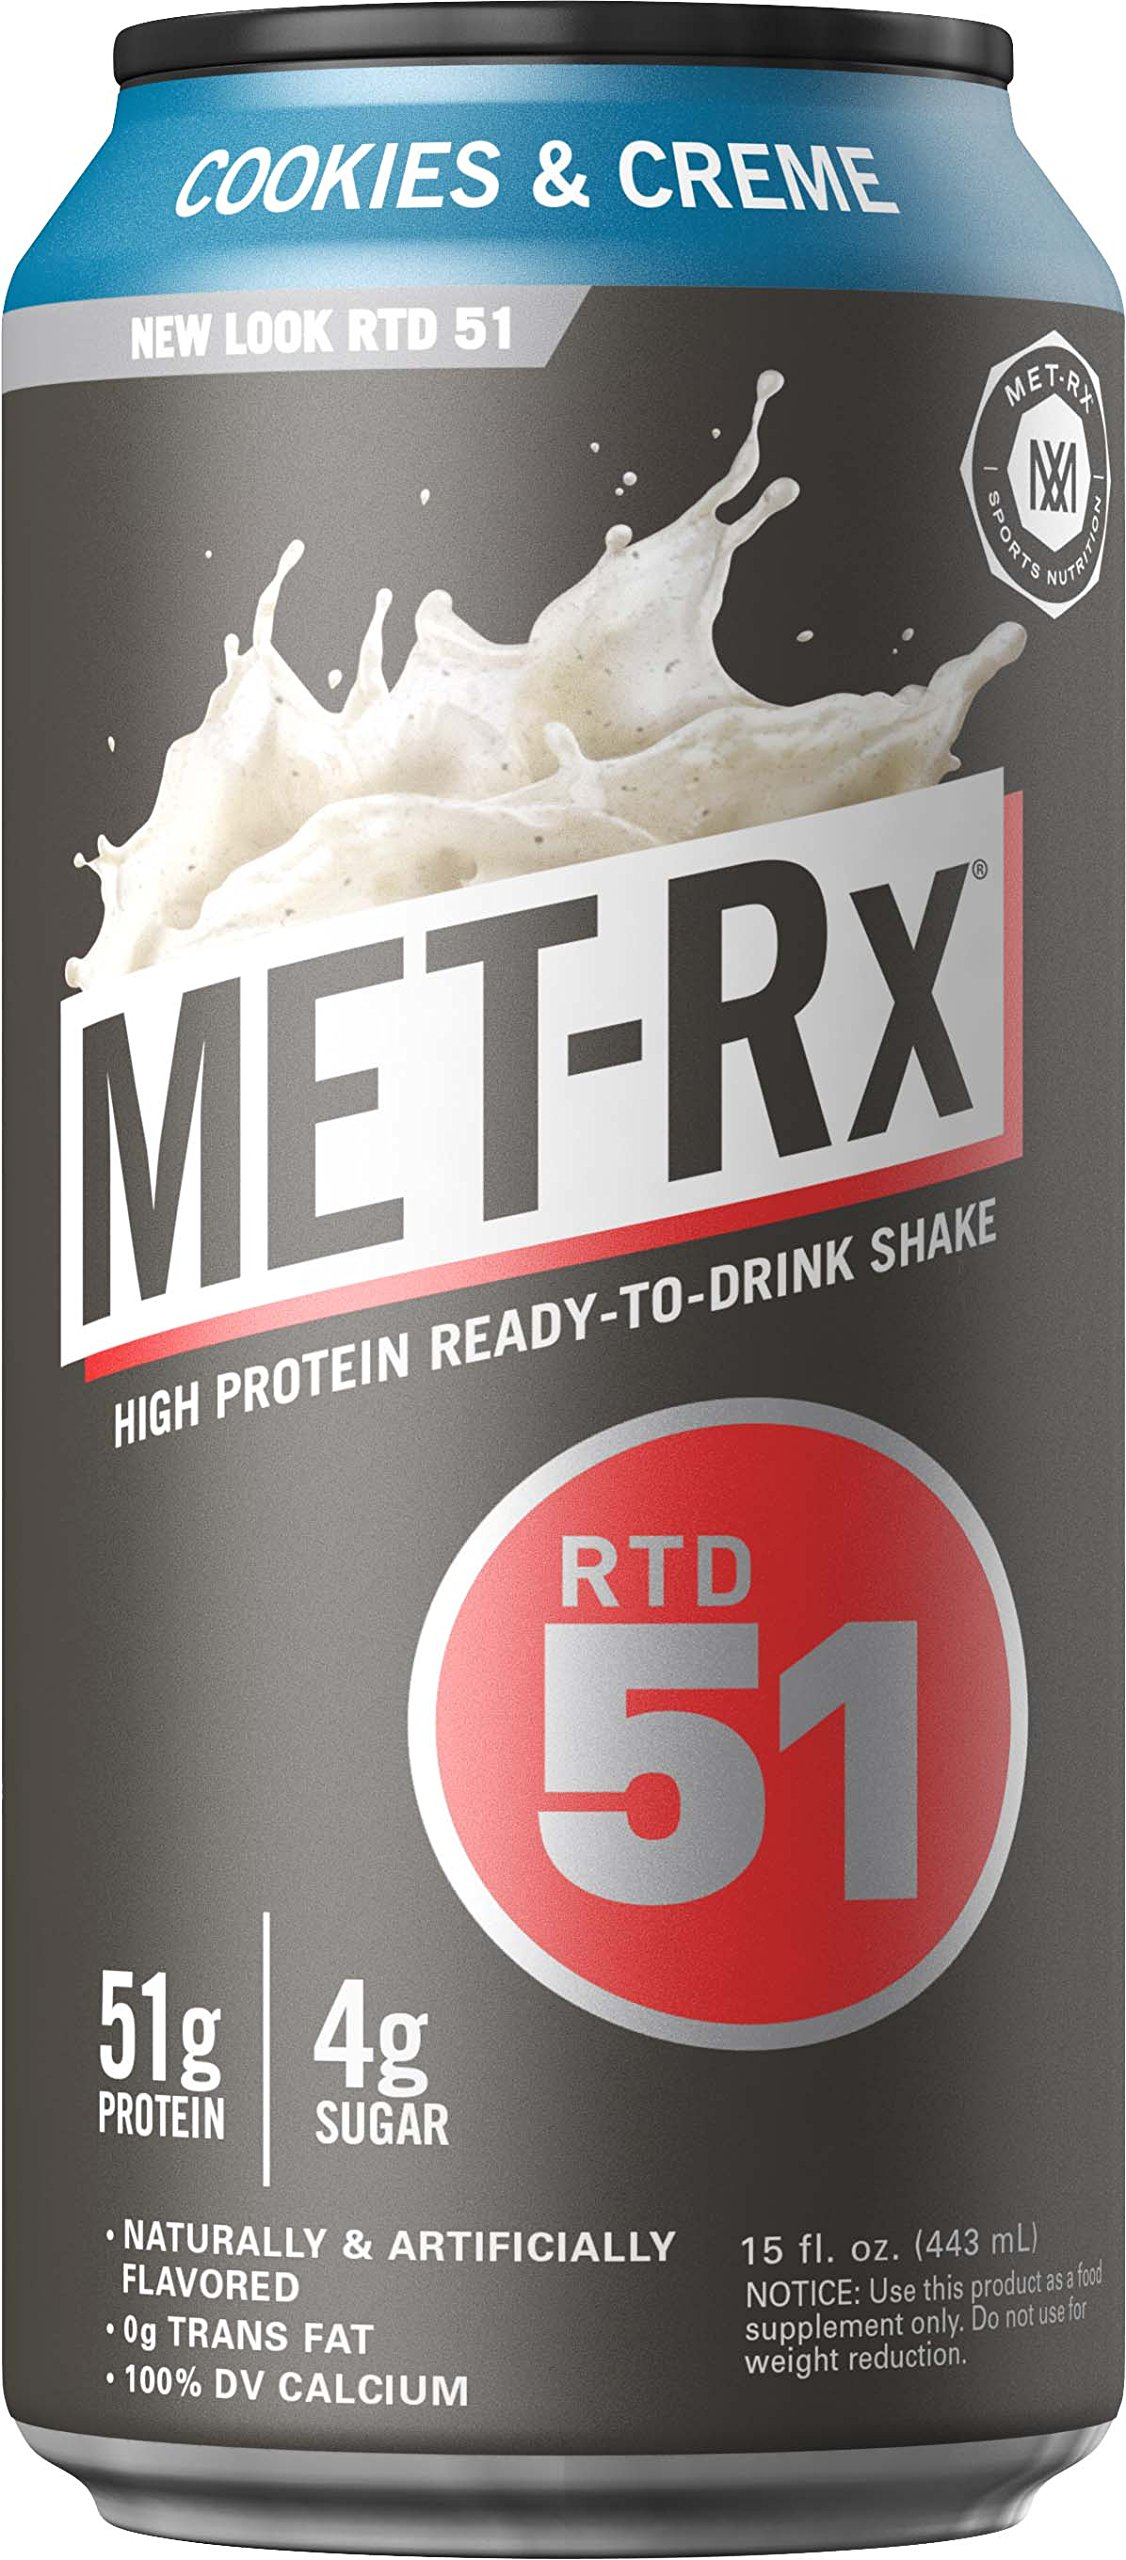 MET-Rx RTD 51 Protein Shake, Ready to Drink and Convenient for Meal Replacement, Low Carb, Cookies and Creme, 15 oz, 12 Count by MET-Rx (Image #1)